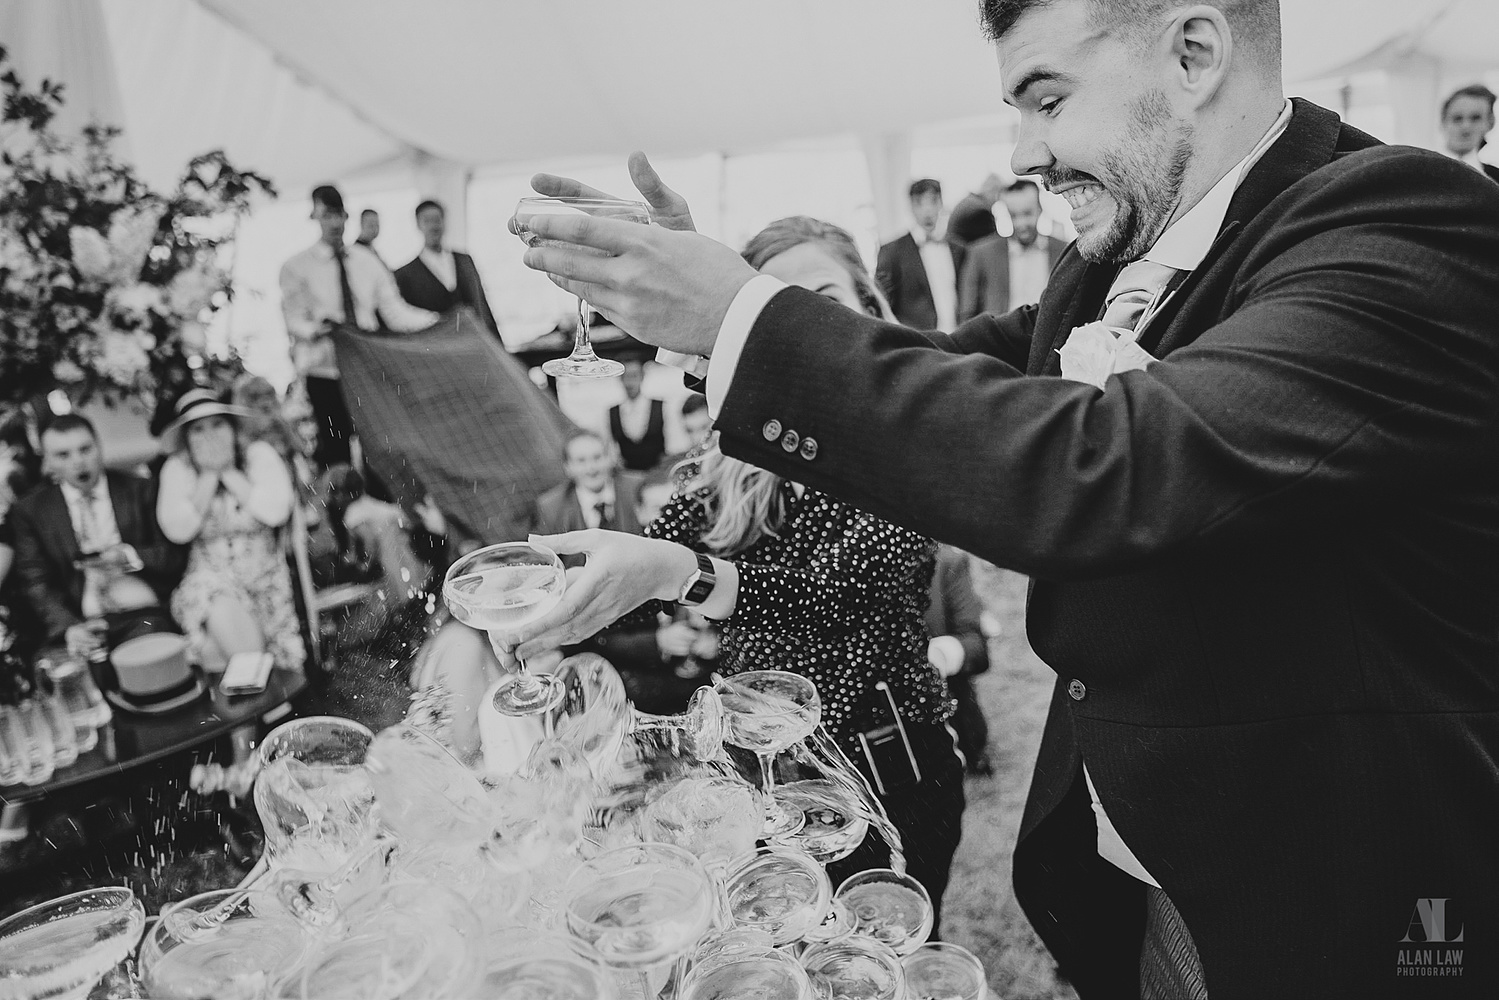 A goom dropping wedding toast glasses.